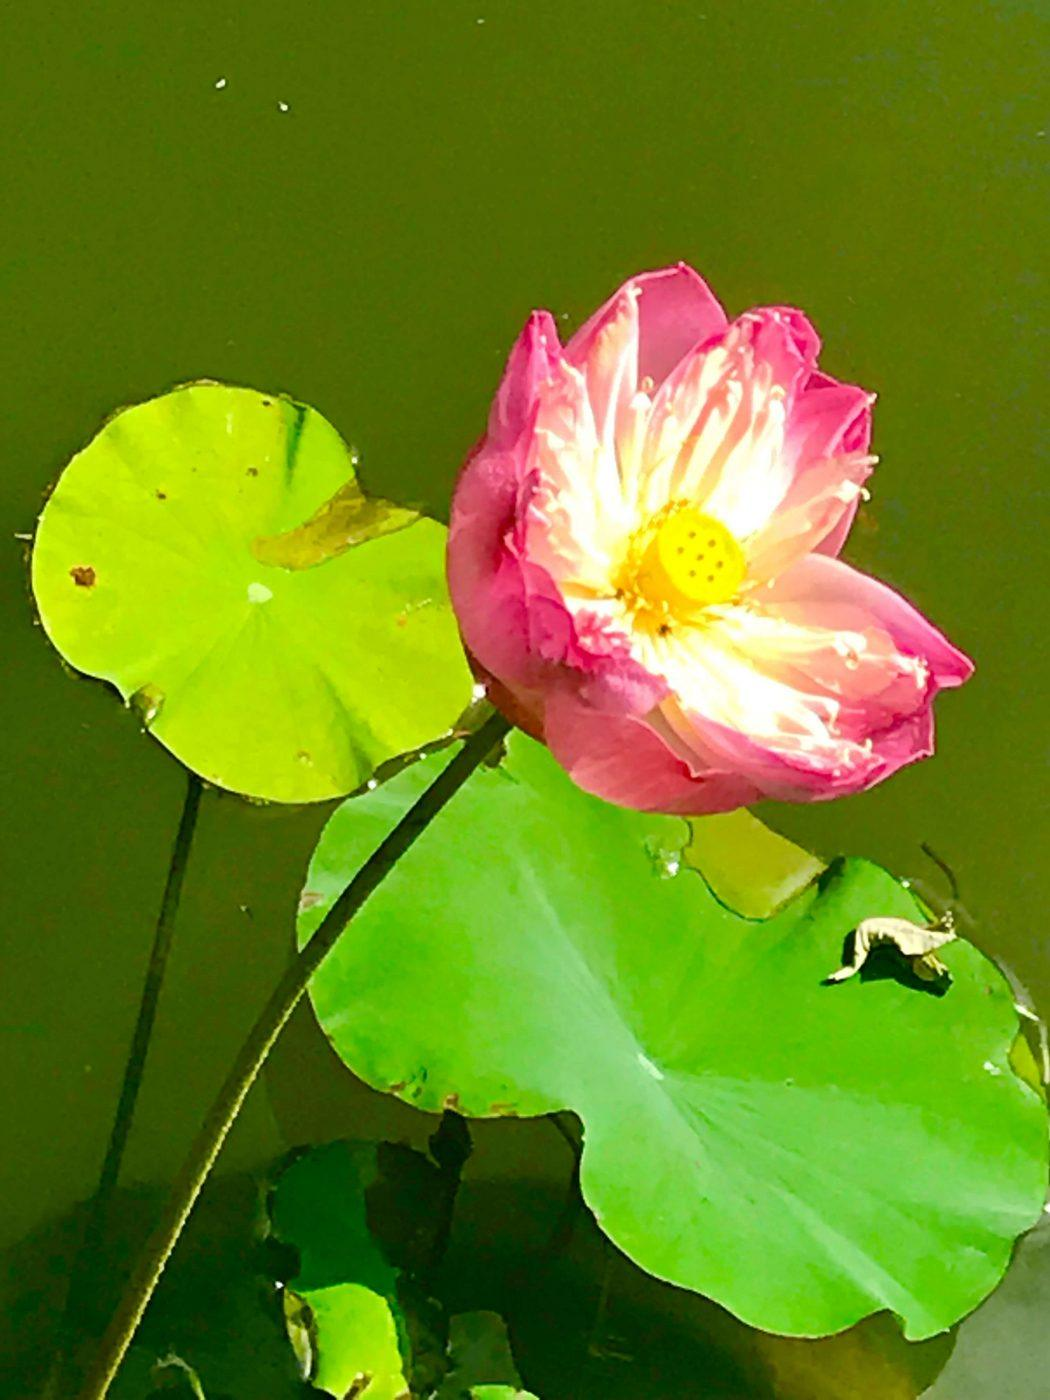 pink flower and lily pad up close